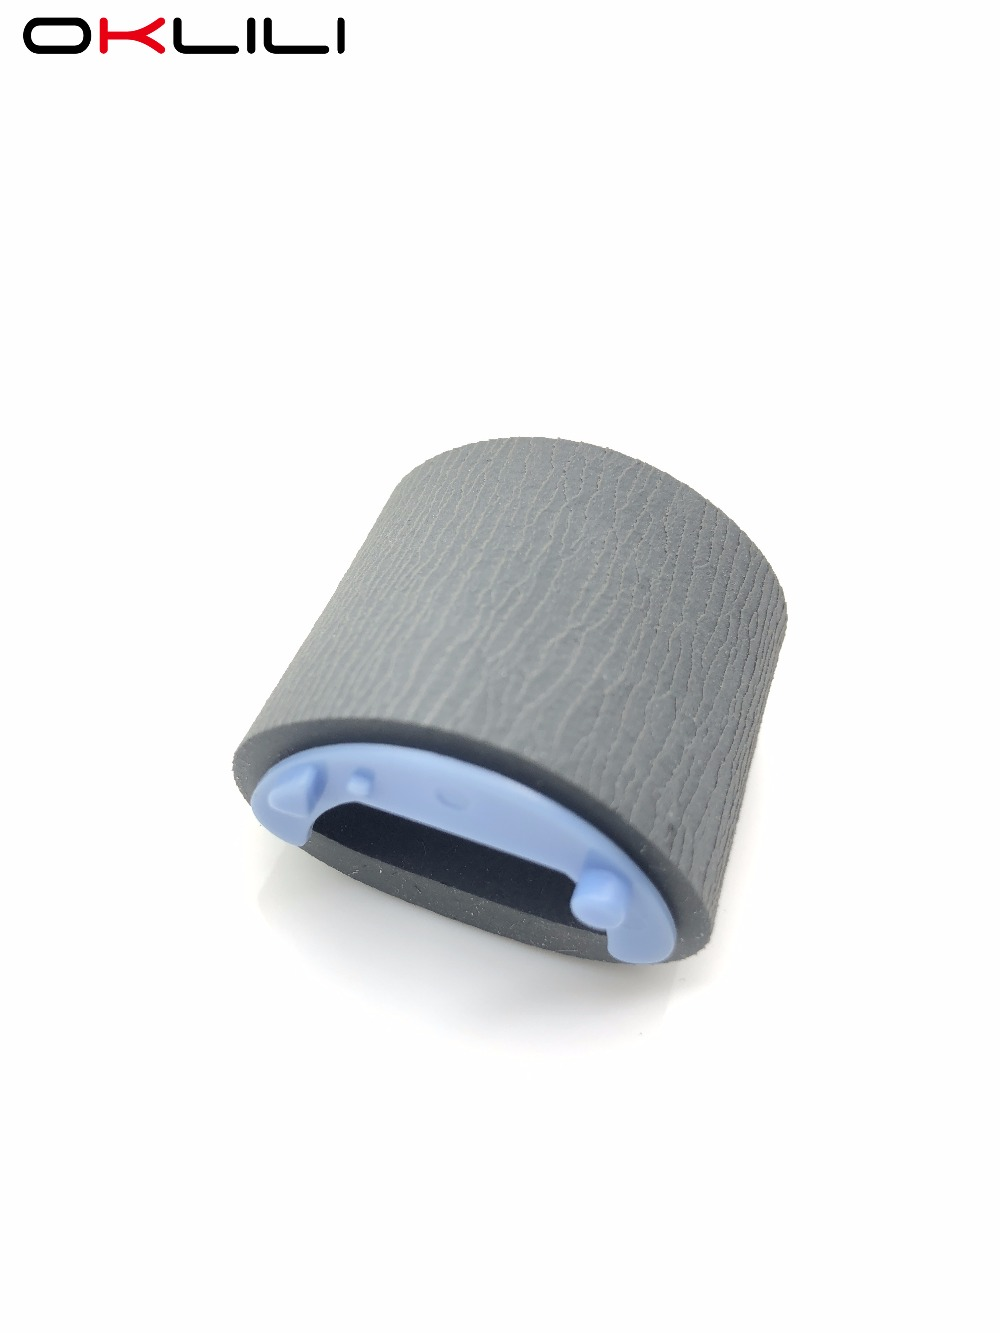 10X RL1-0266-000 RC1-2050-000 Paper Pickup Roller for HP 1010 1012 1015 1018 1020 1022 3015 3020 3030 3050 3052 3055 M1005 M1319 1pcs alzenti for hp 1010 1012 1015 1018 1020 1022 3015 3020 3030 3052 3050 magnetic roller printer supplies on sale